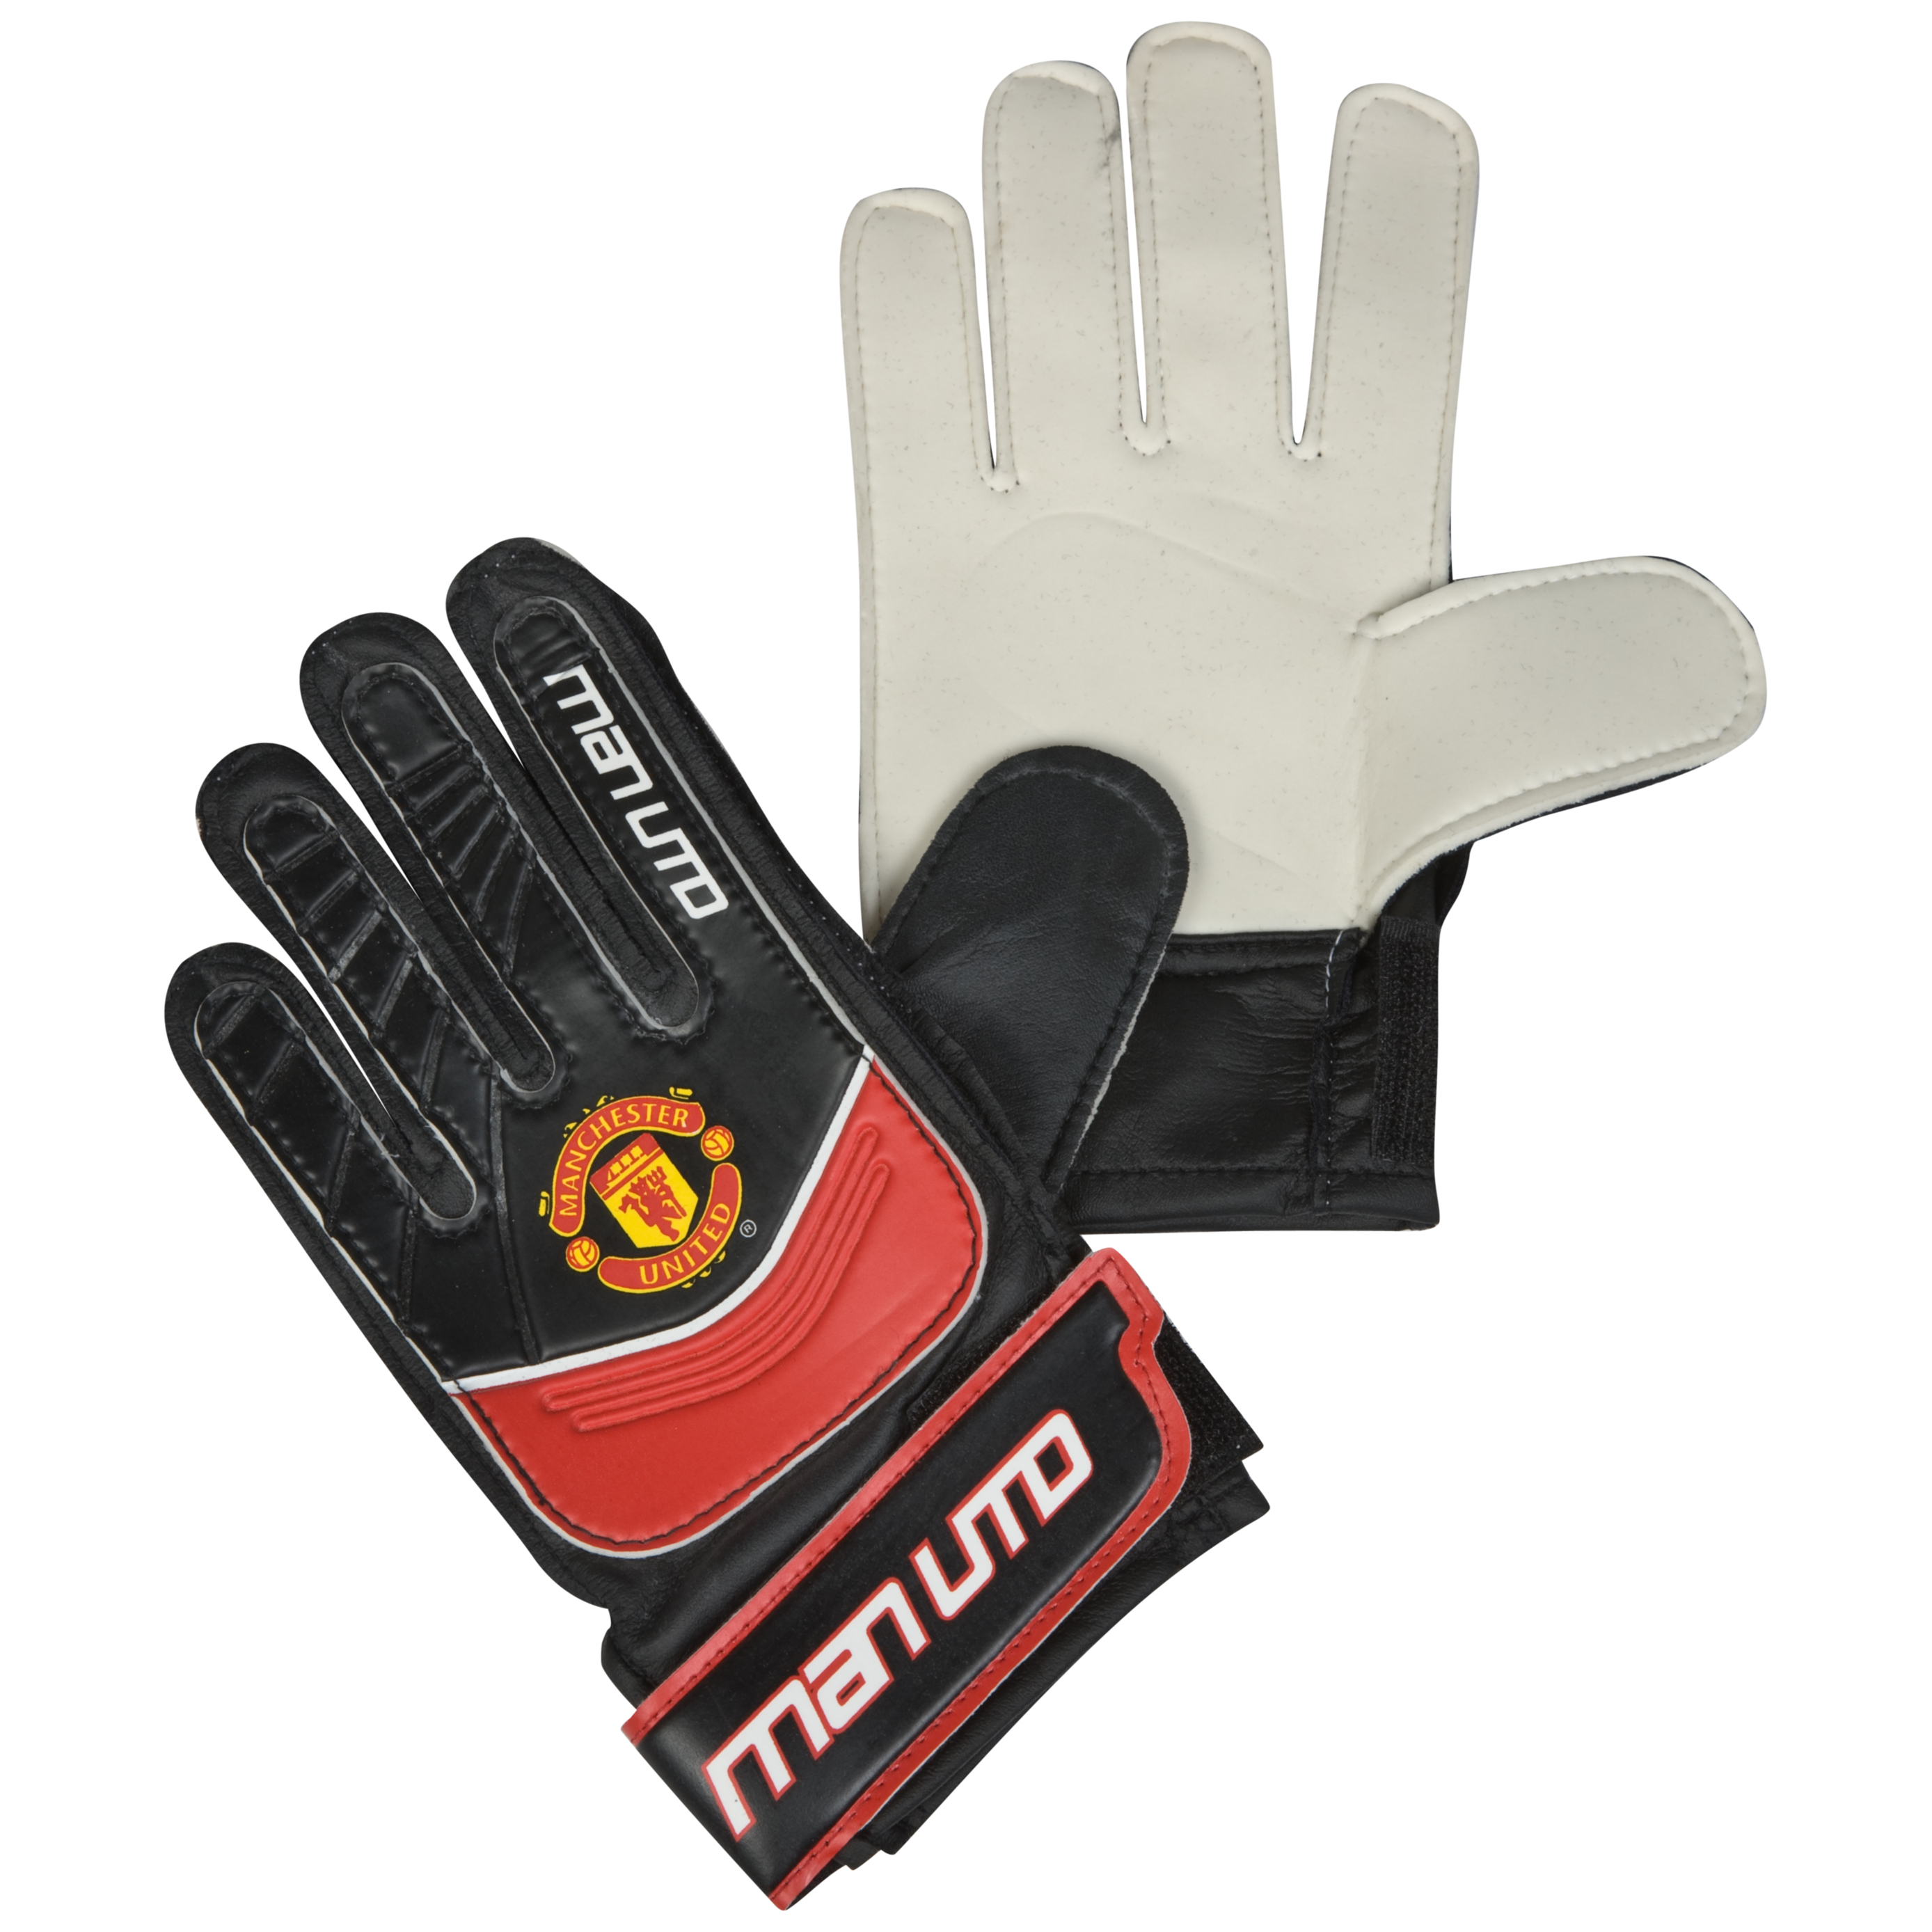 Manchester United Goal Keeper Gloves - Boys